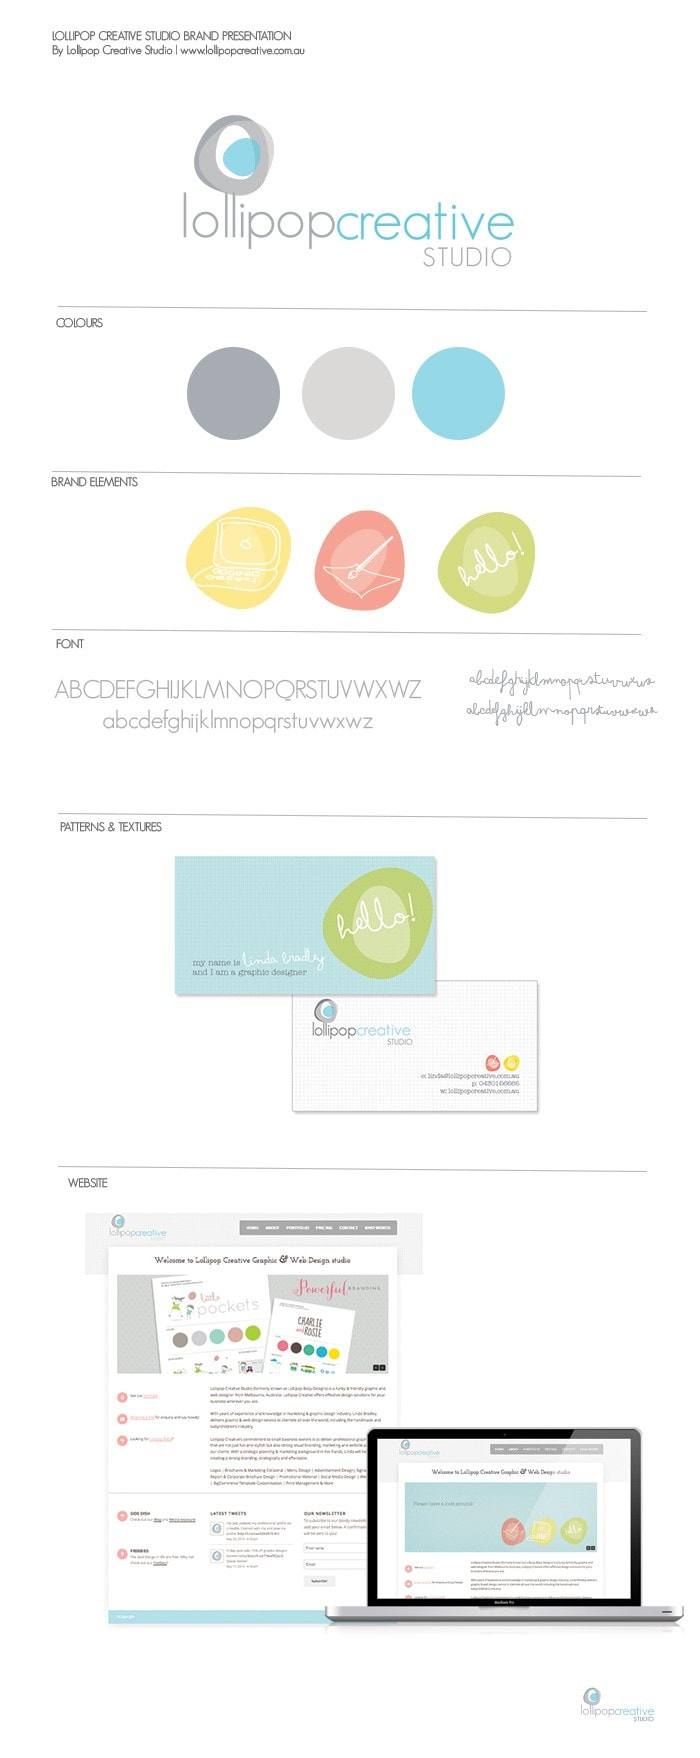 Lollipop Creative Studio Brandboard